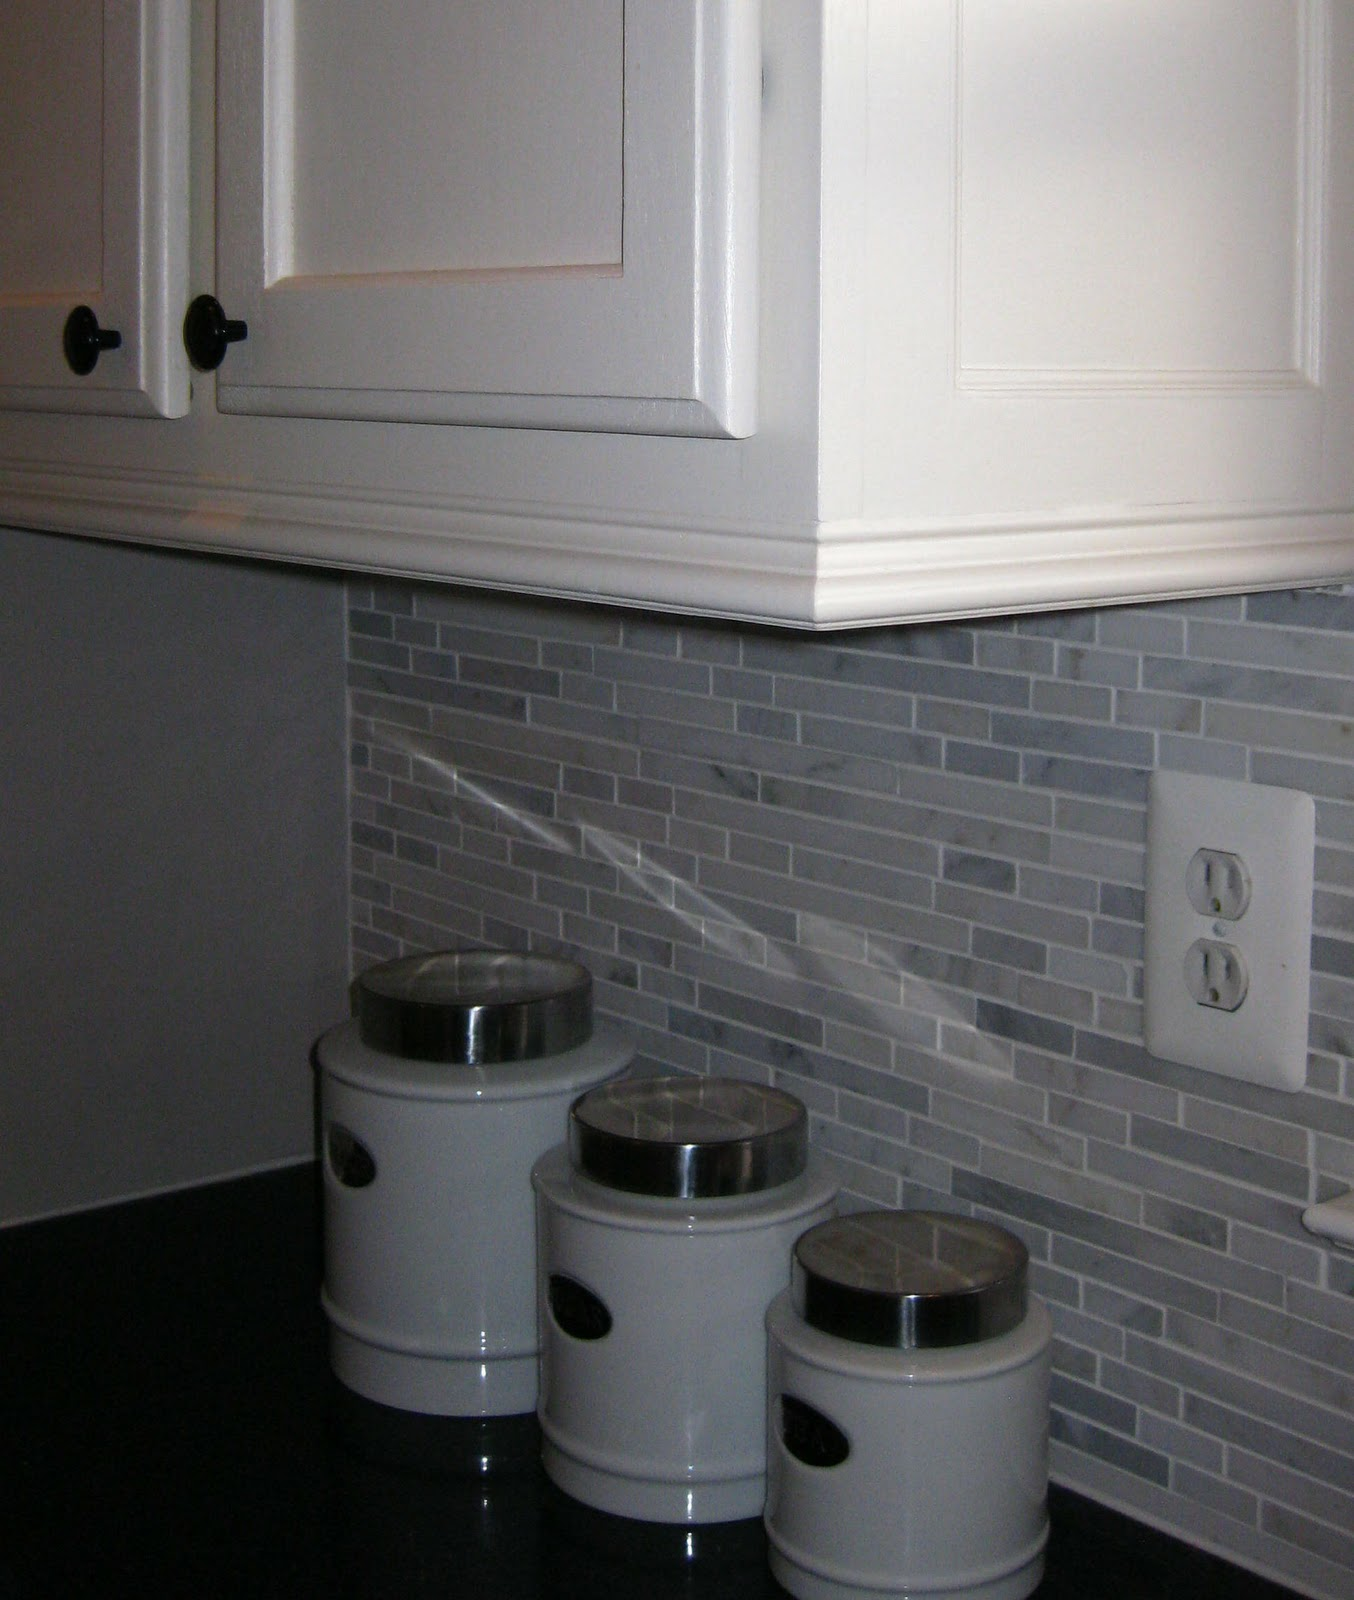 Decorative Molding Kitchen Cabinets Large Trash Can Adding Moldings To Your Remodelando La Casa